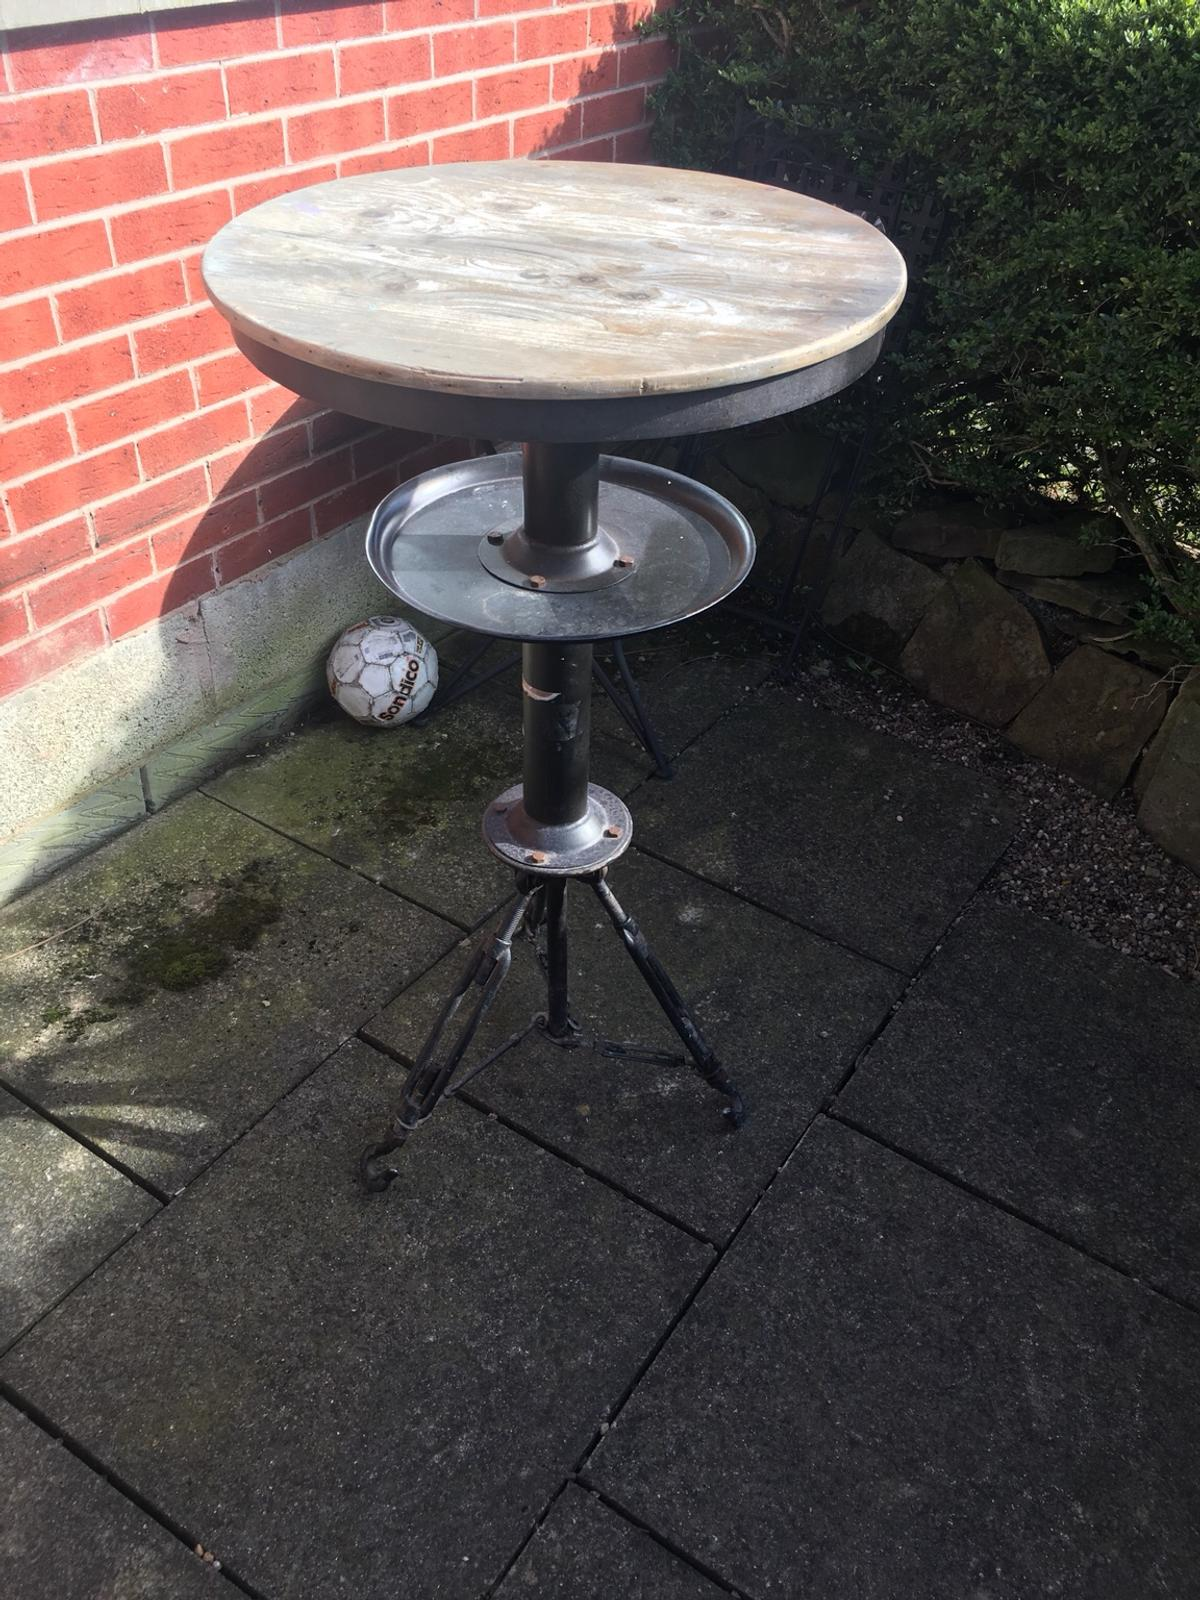 A beautiful wooden top with metal stand. A great rustic bar table. Round too